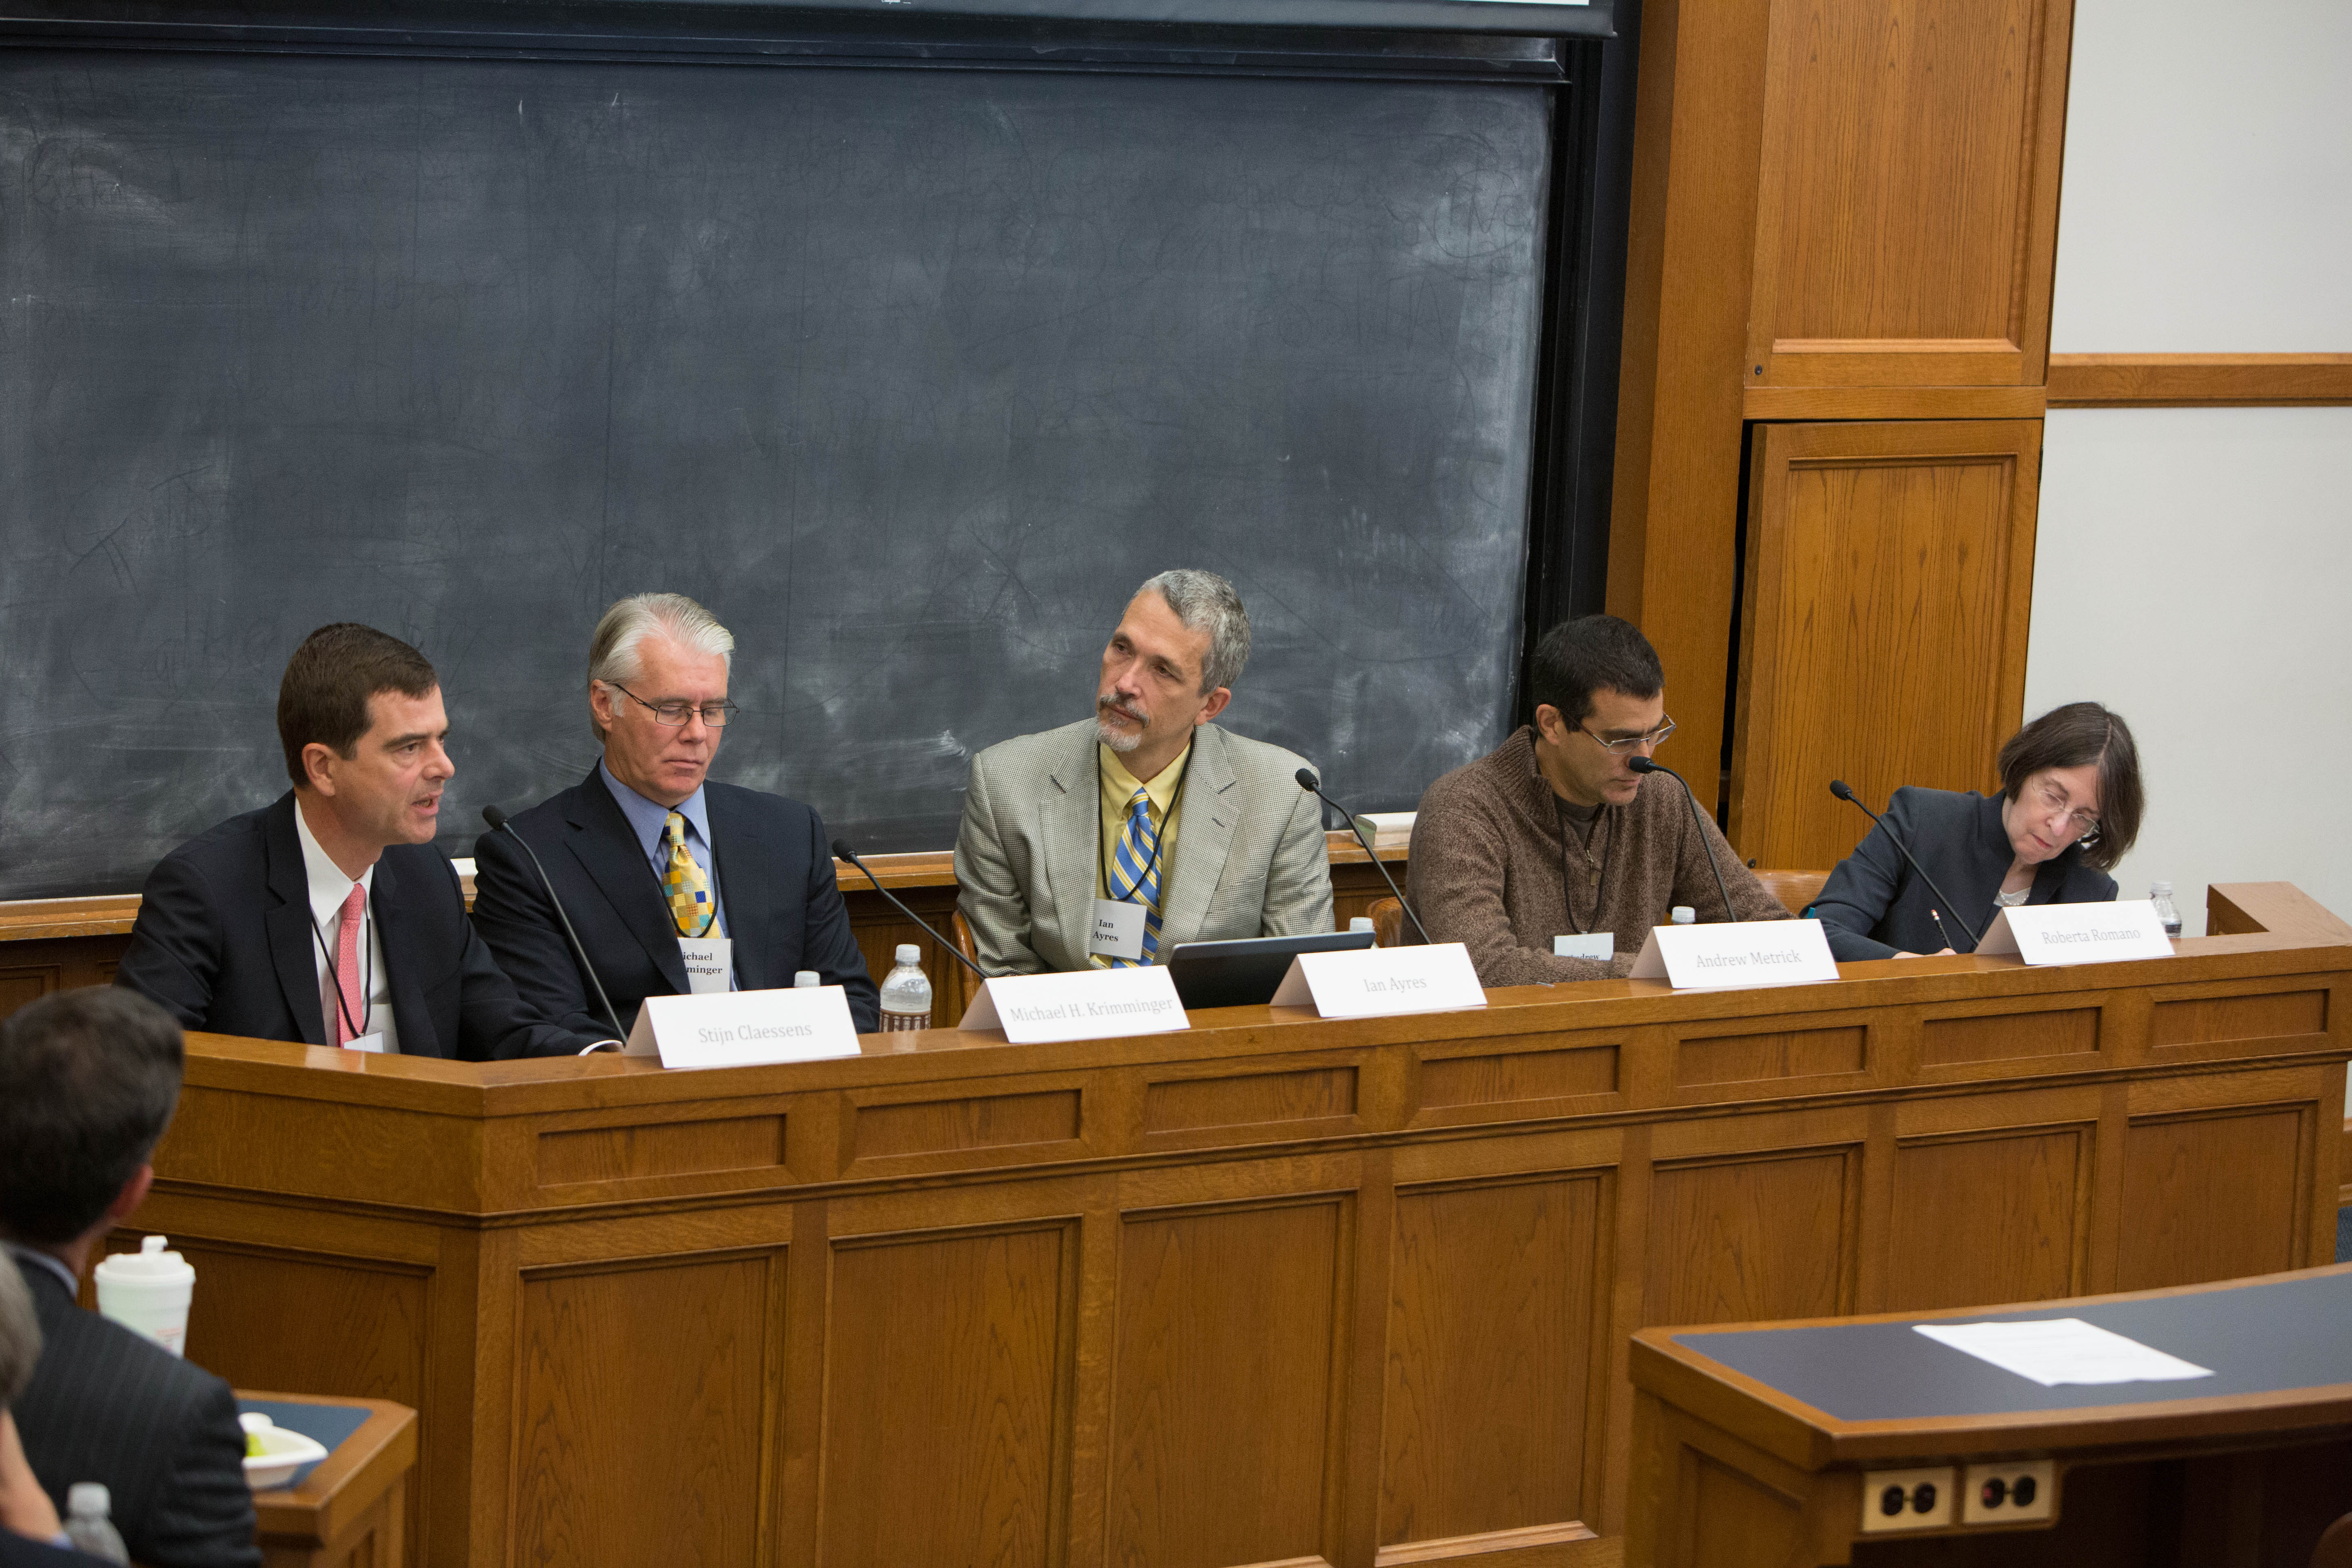 Stijn Claessens, Michael H. Krimminger, YLS Prof. Ian Ayres '86, Yale SOM Prof. Andrew Metrick, and YLS Prof. and Center Dir. Roberta Romano '80